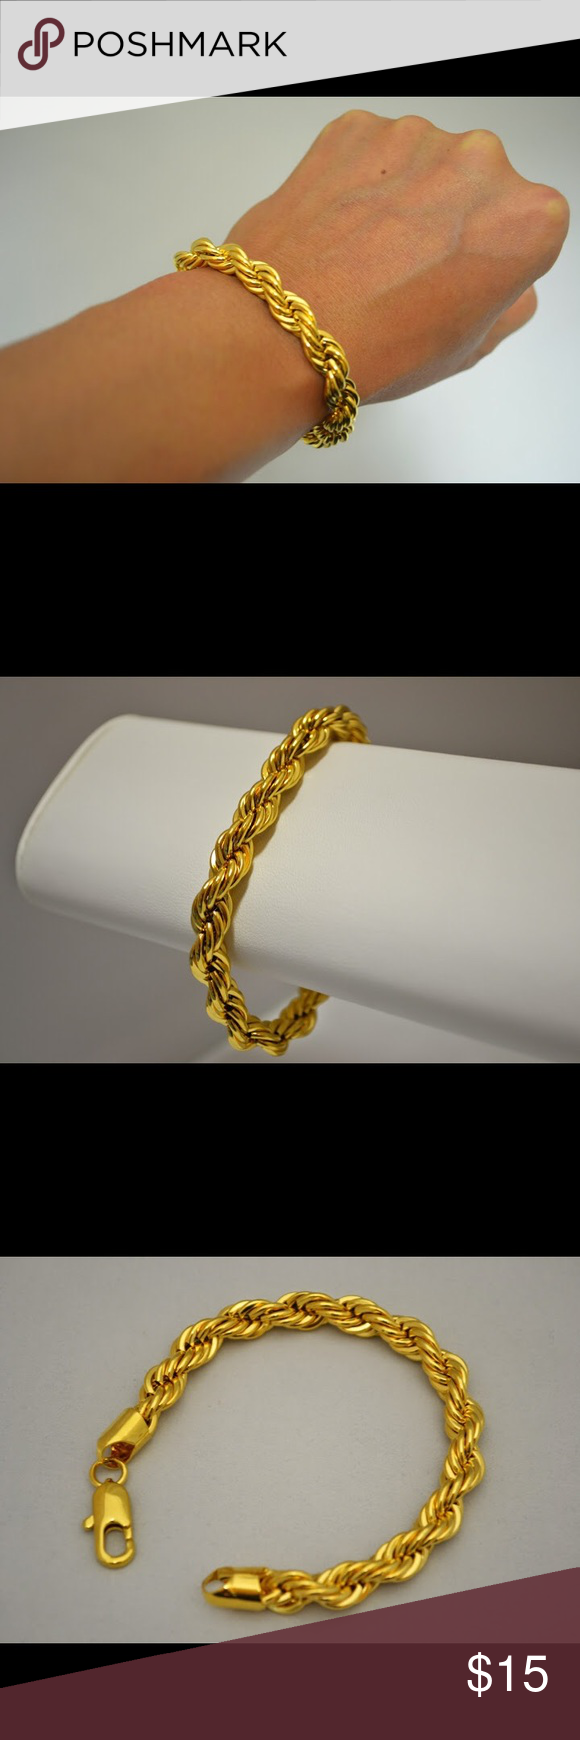 10mm 24k Gold Overlay French Rope Chain Bracelet Chain Bracelet Rope Chain Gold